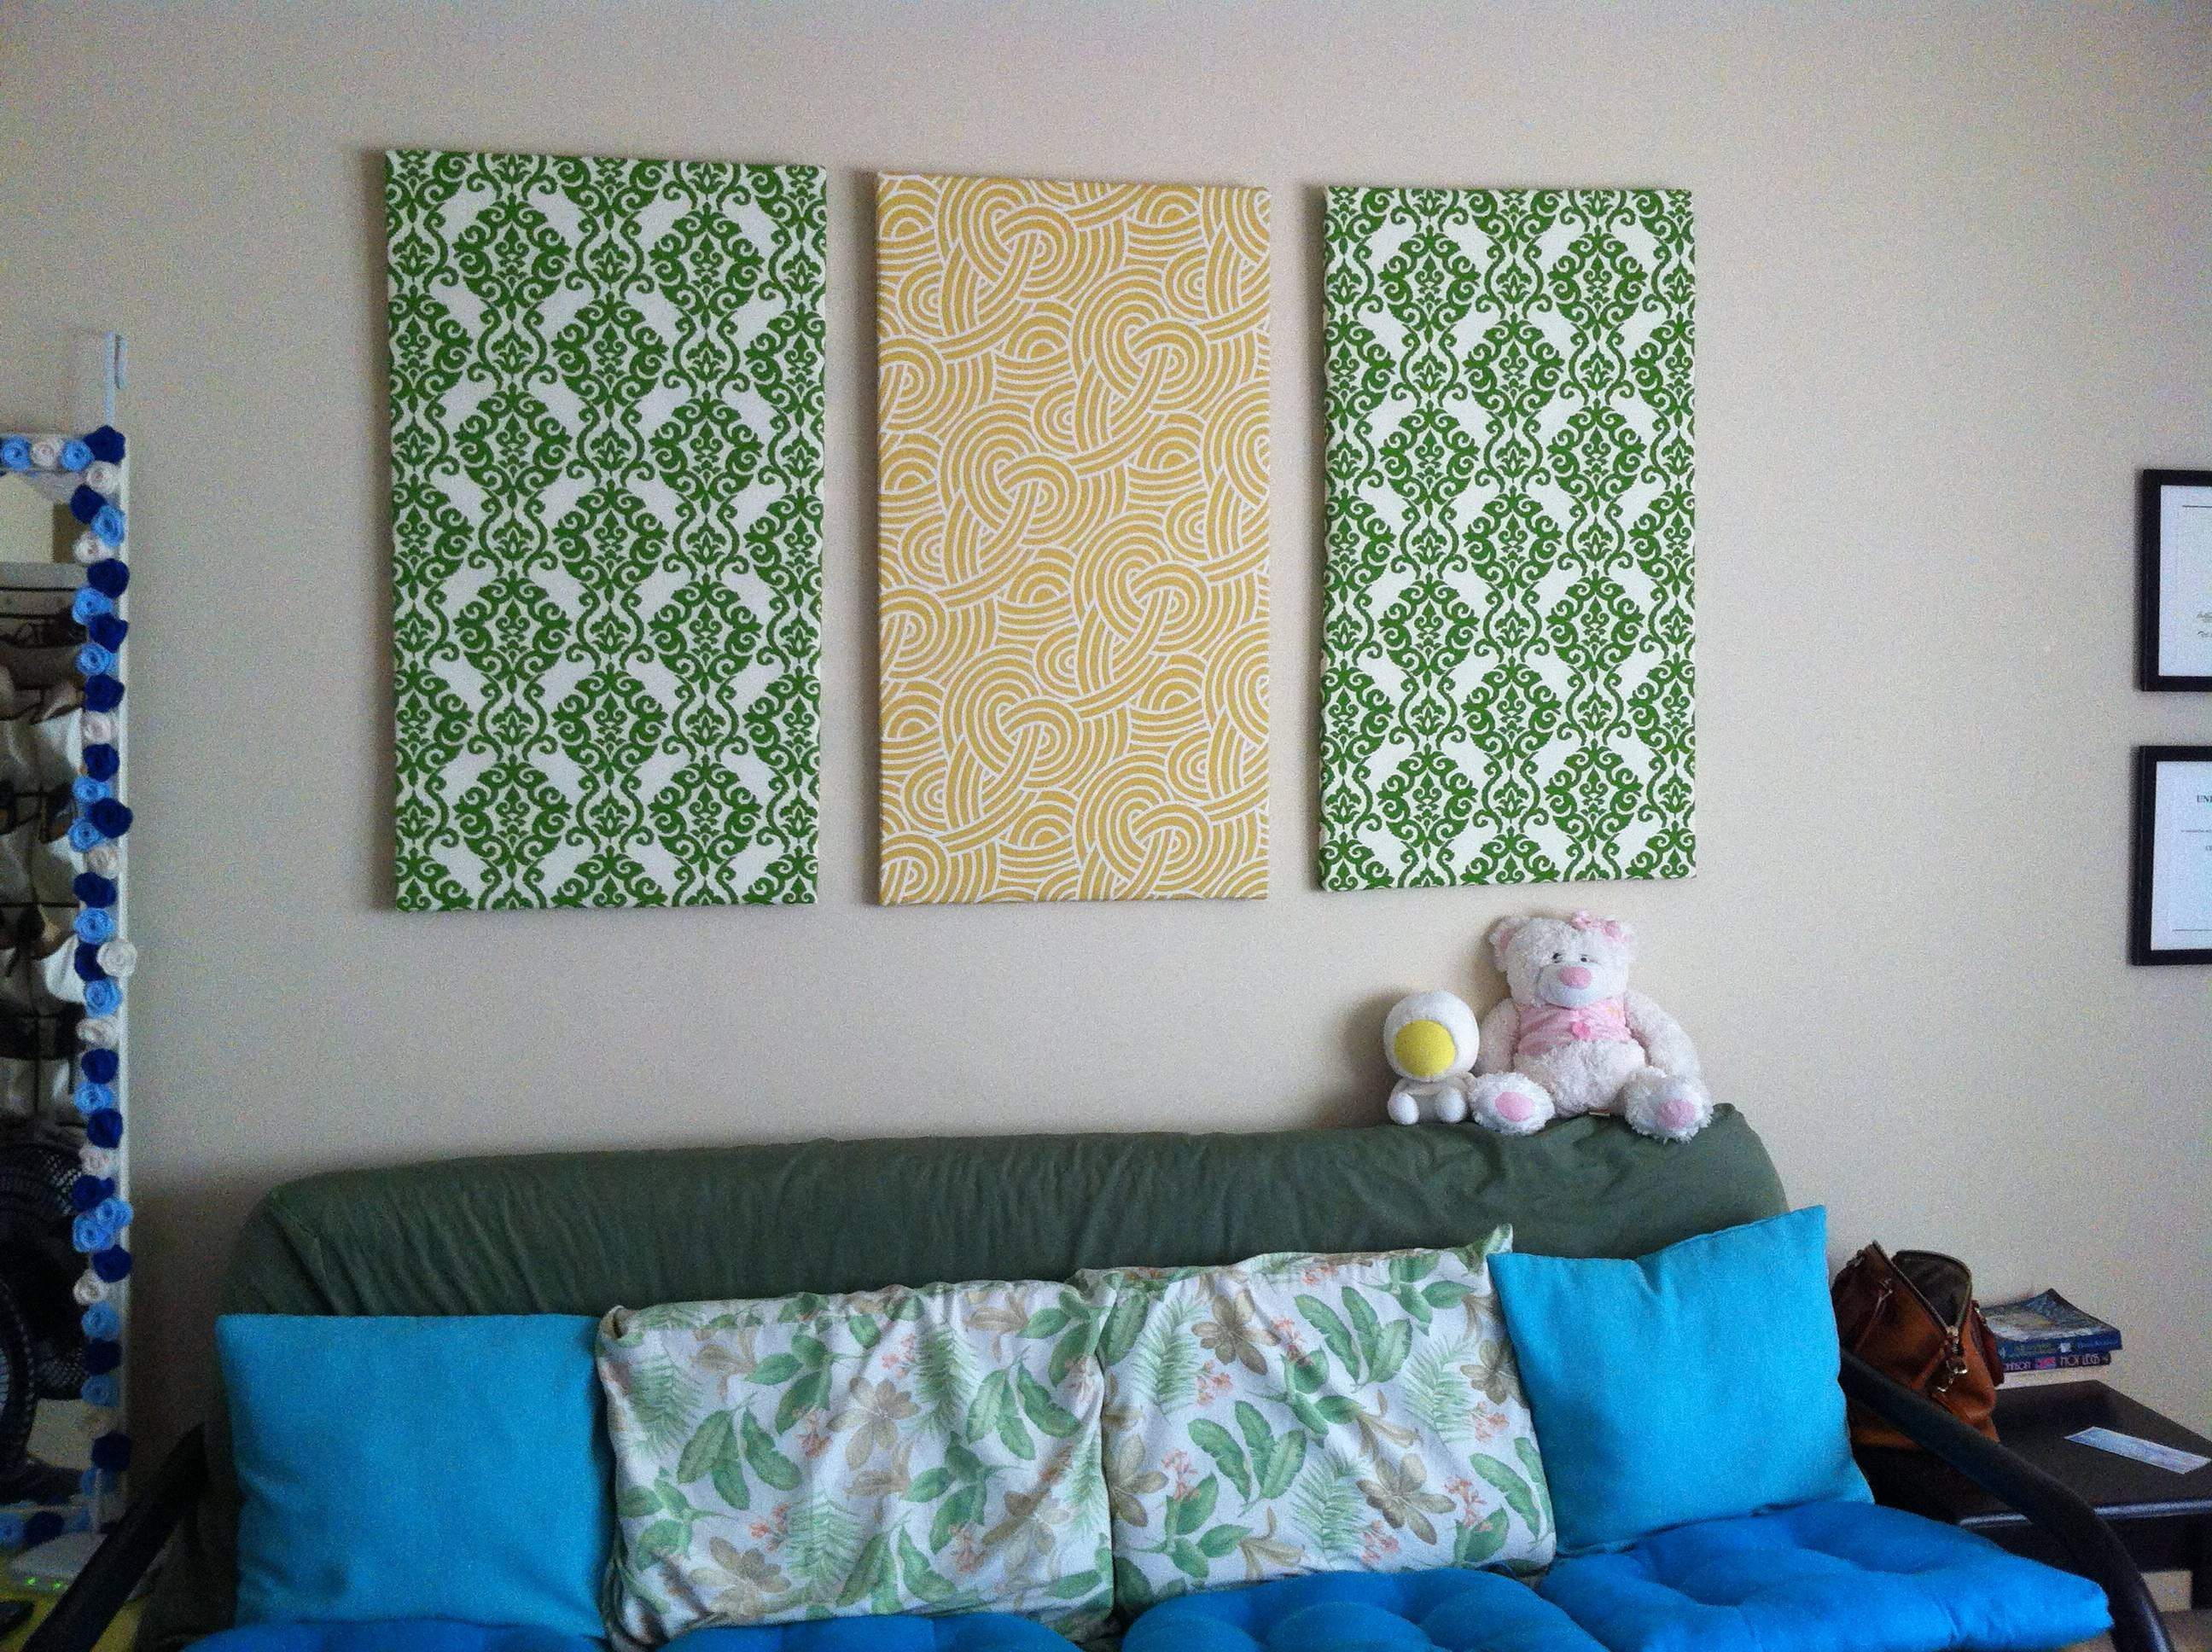 Wall Art Design: Fabric Wall Art Diy Unique Design Collection Art Within Most Recently Released Fabric Canvas Wall Art (View 16 of 20)